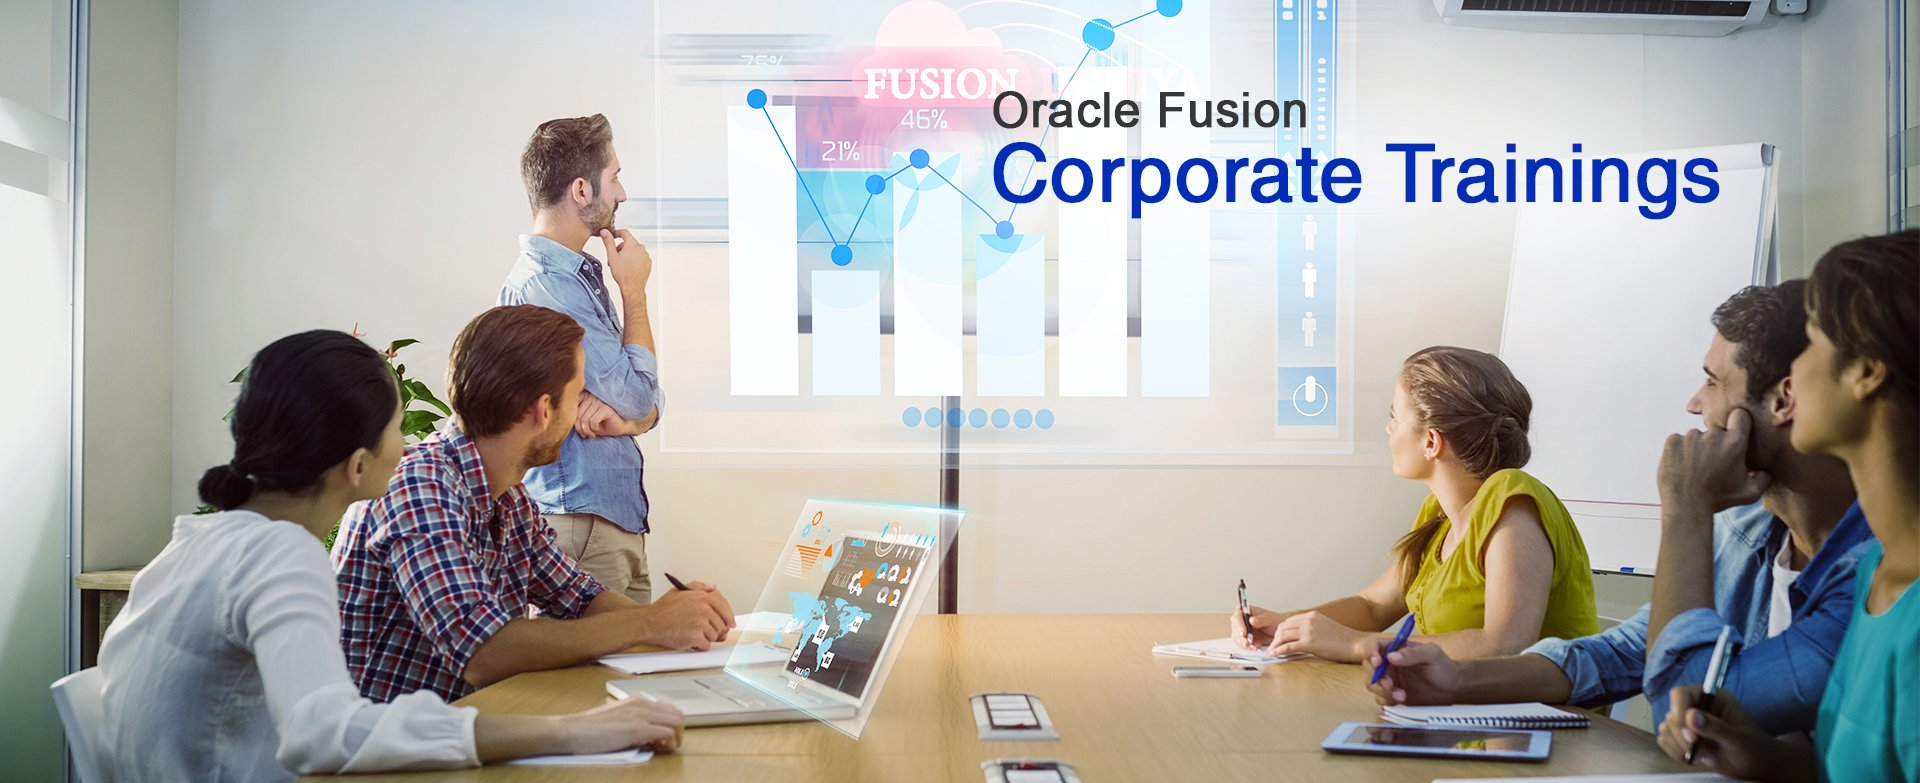 oracle-fusion-corporate-trainings